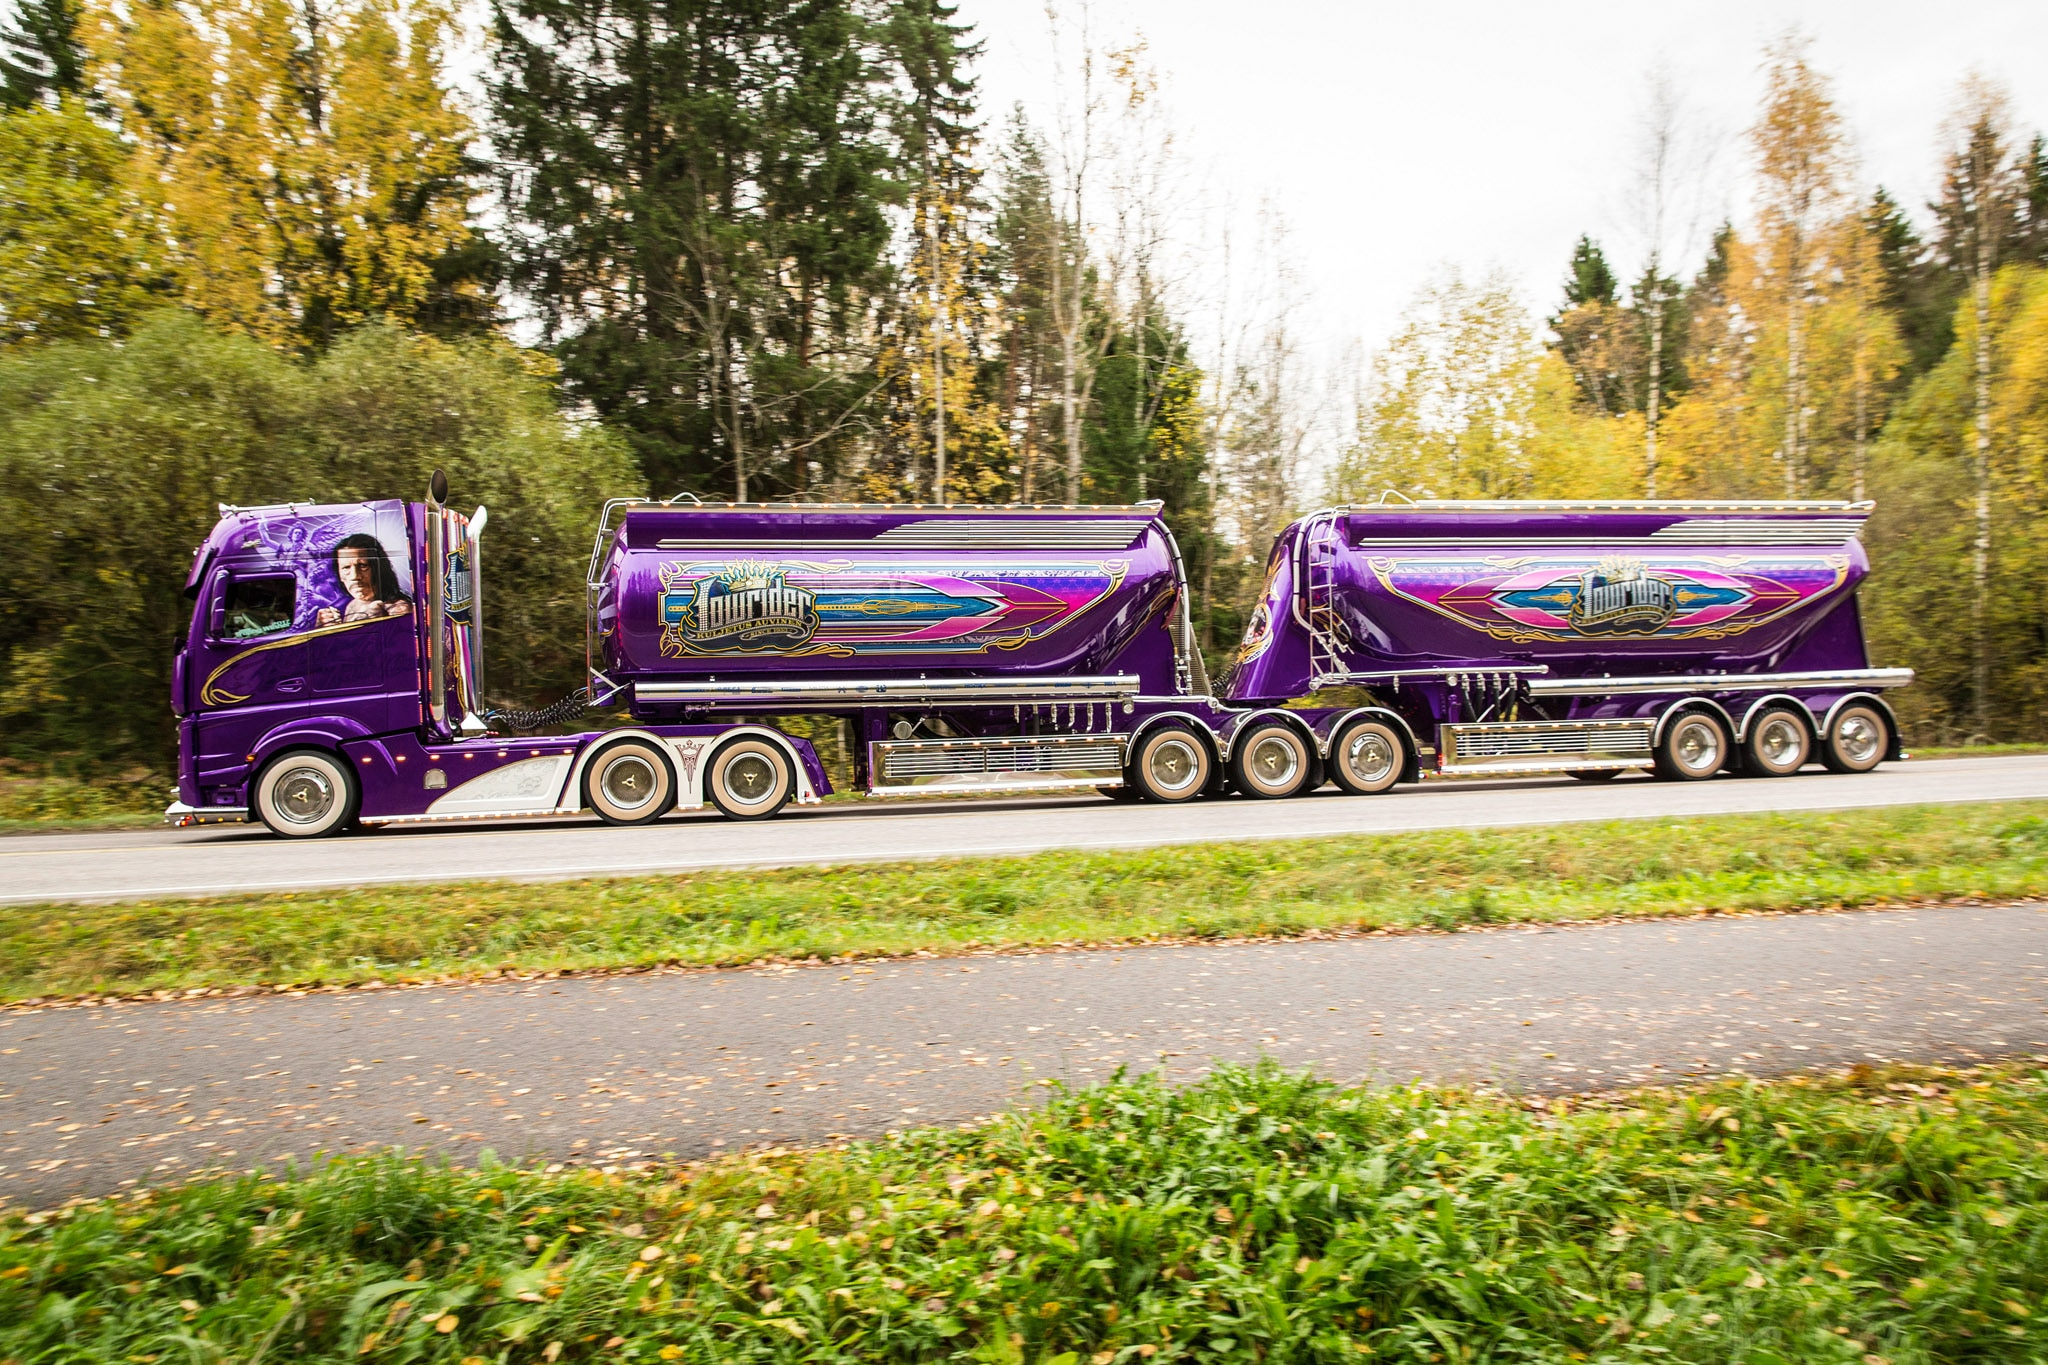 Mika-Auvinens-Showtruck-Actros-Lowrider-